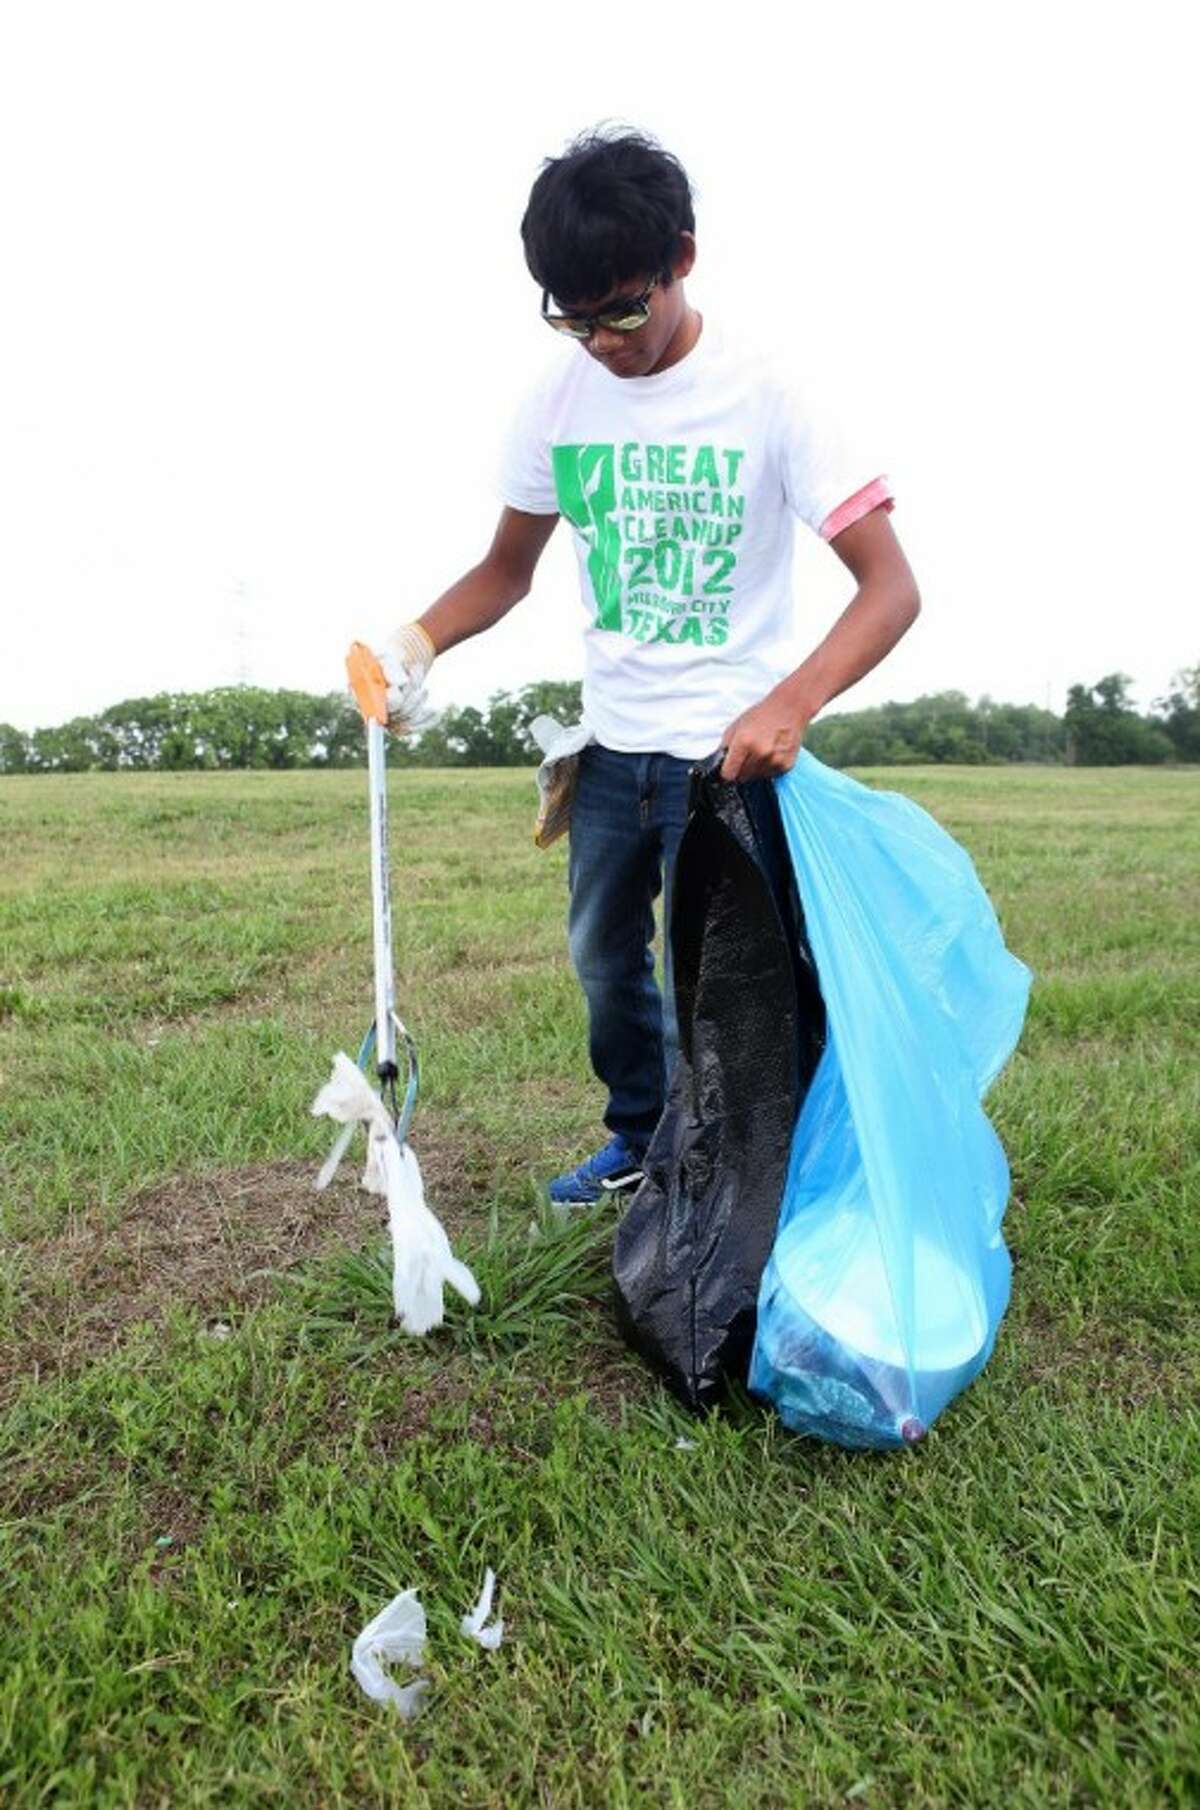 Josh Gicana 16, of Missouri City works in a field picking up trash as part of the Great American Cleanup 2012 at Buffalo Run Park in Missouri City.